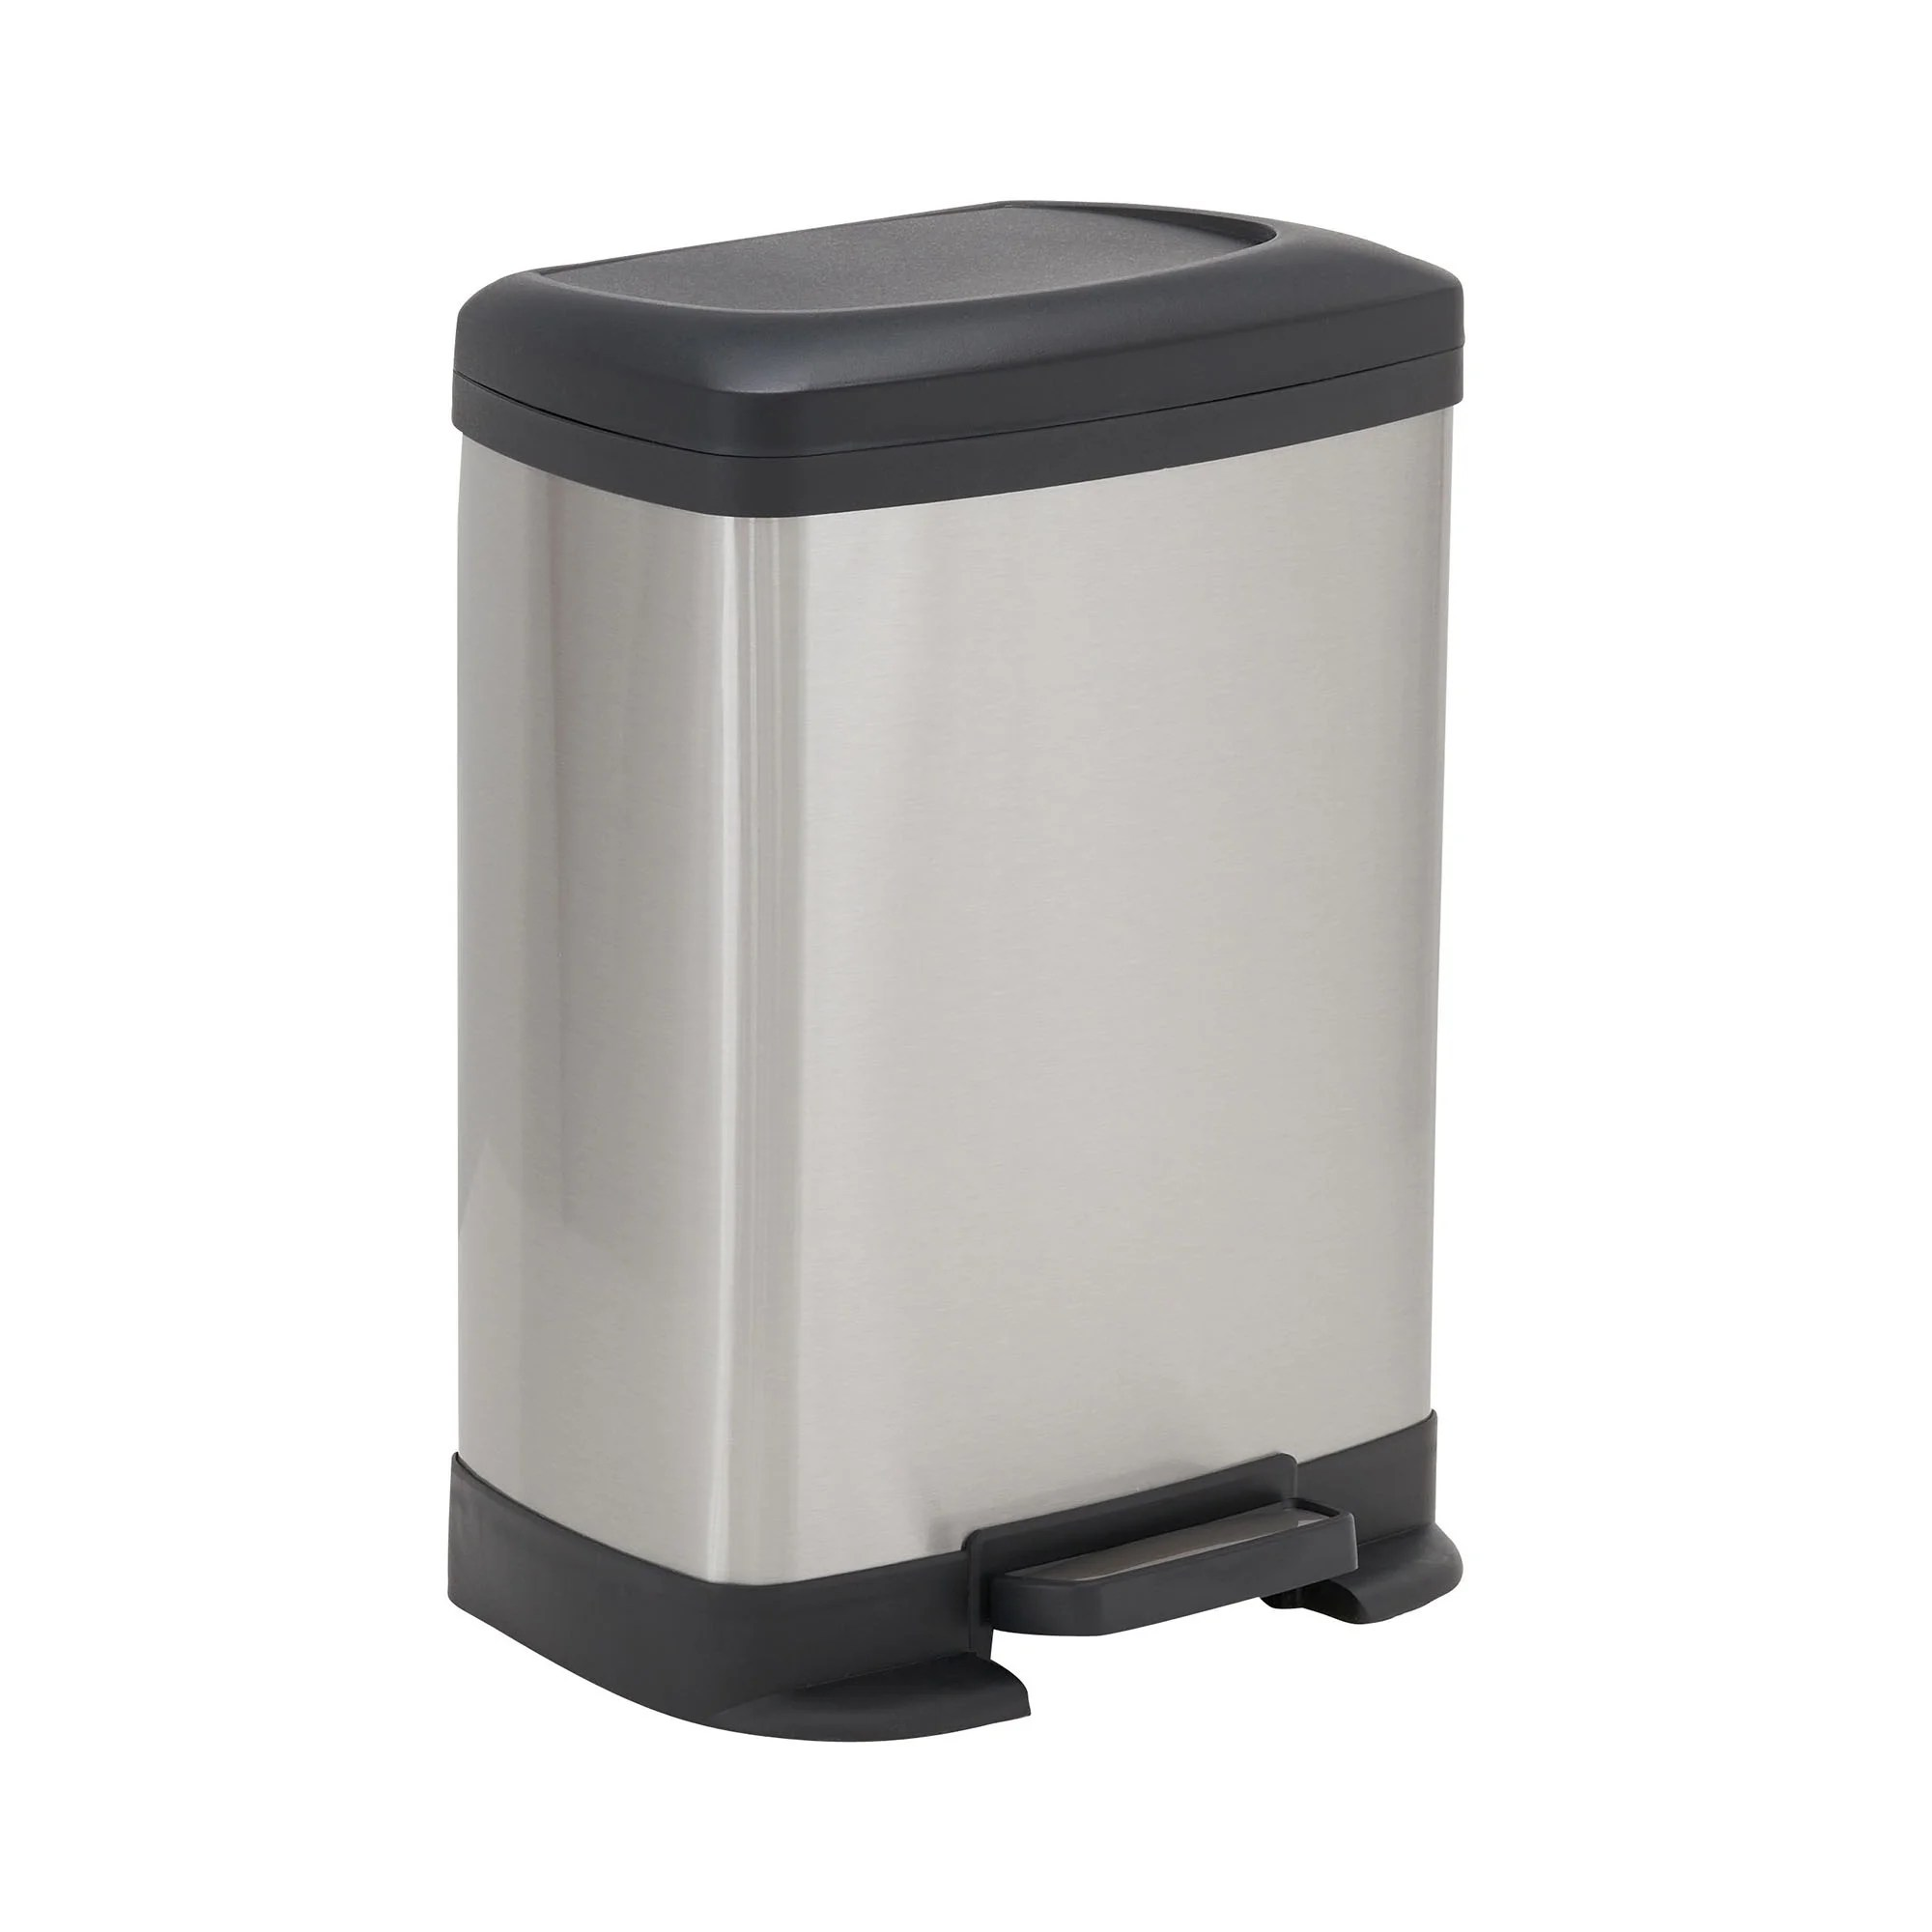 Rectangular Bin Design Trend 8l Saxony Rectangular Stainless Steel Step Trash Can Bin With Black Lid